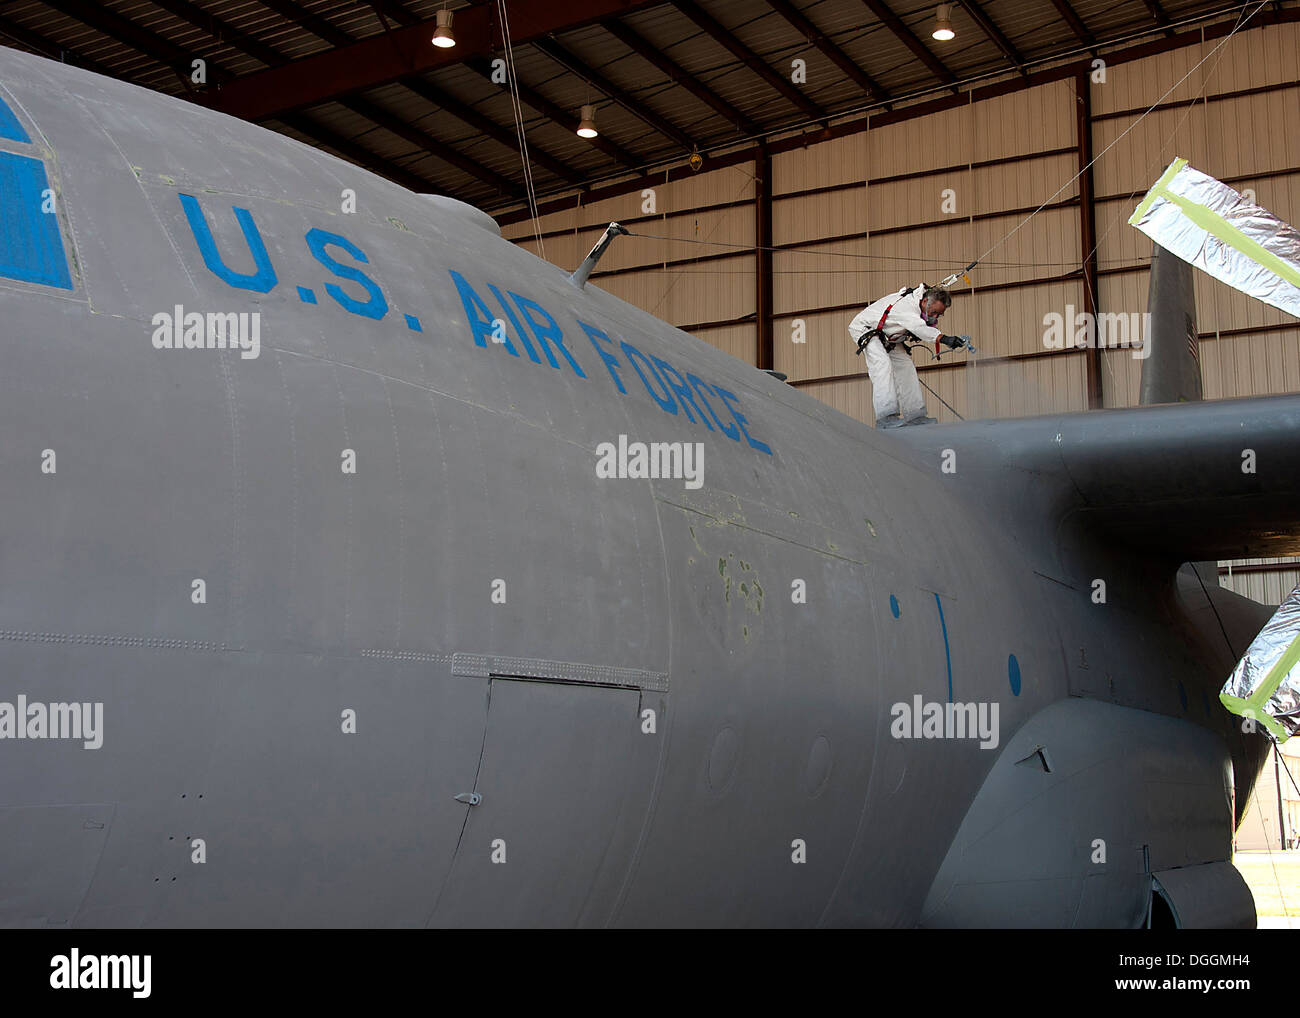 Mr. Larry Allen, Aircraft Painter, L3 Communications Integrated Systems Vertex Aerospace, apply paint to protect the C130 aircraft body from corrosion that can easily occur at high altitudes at Sheppard Air Force Base, Texas, Oct. 09. Aircraft painter's r - Stock Image